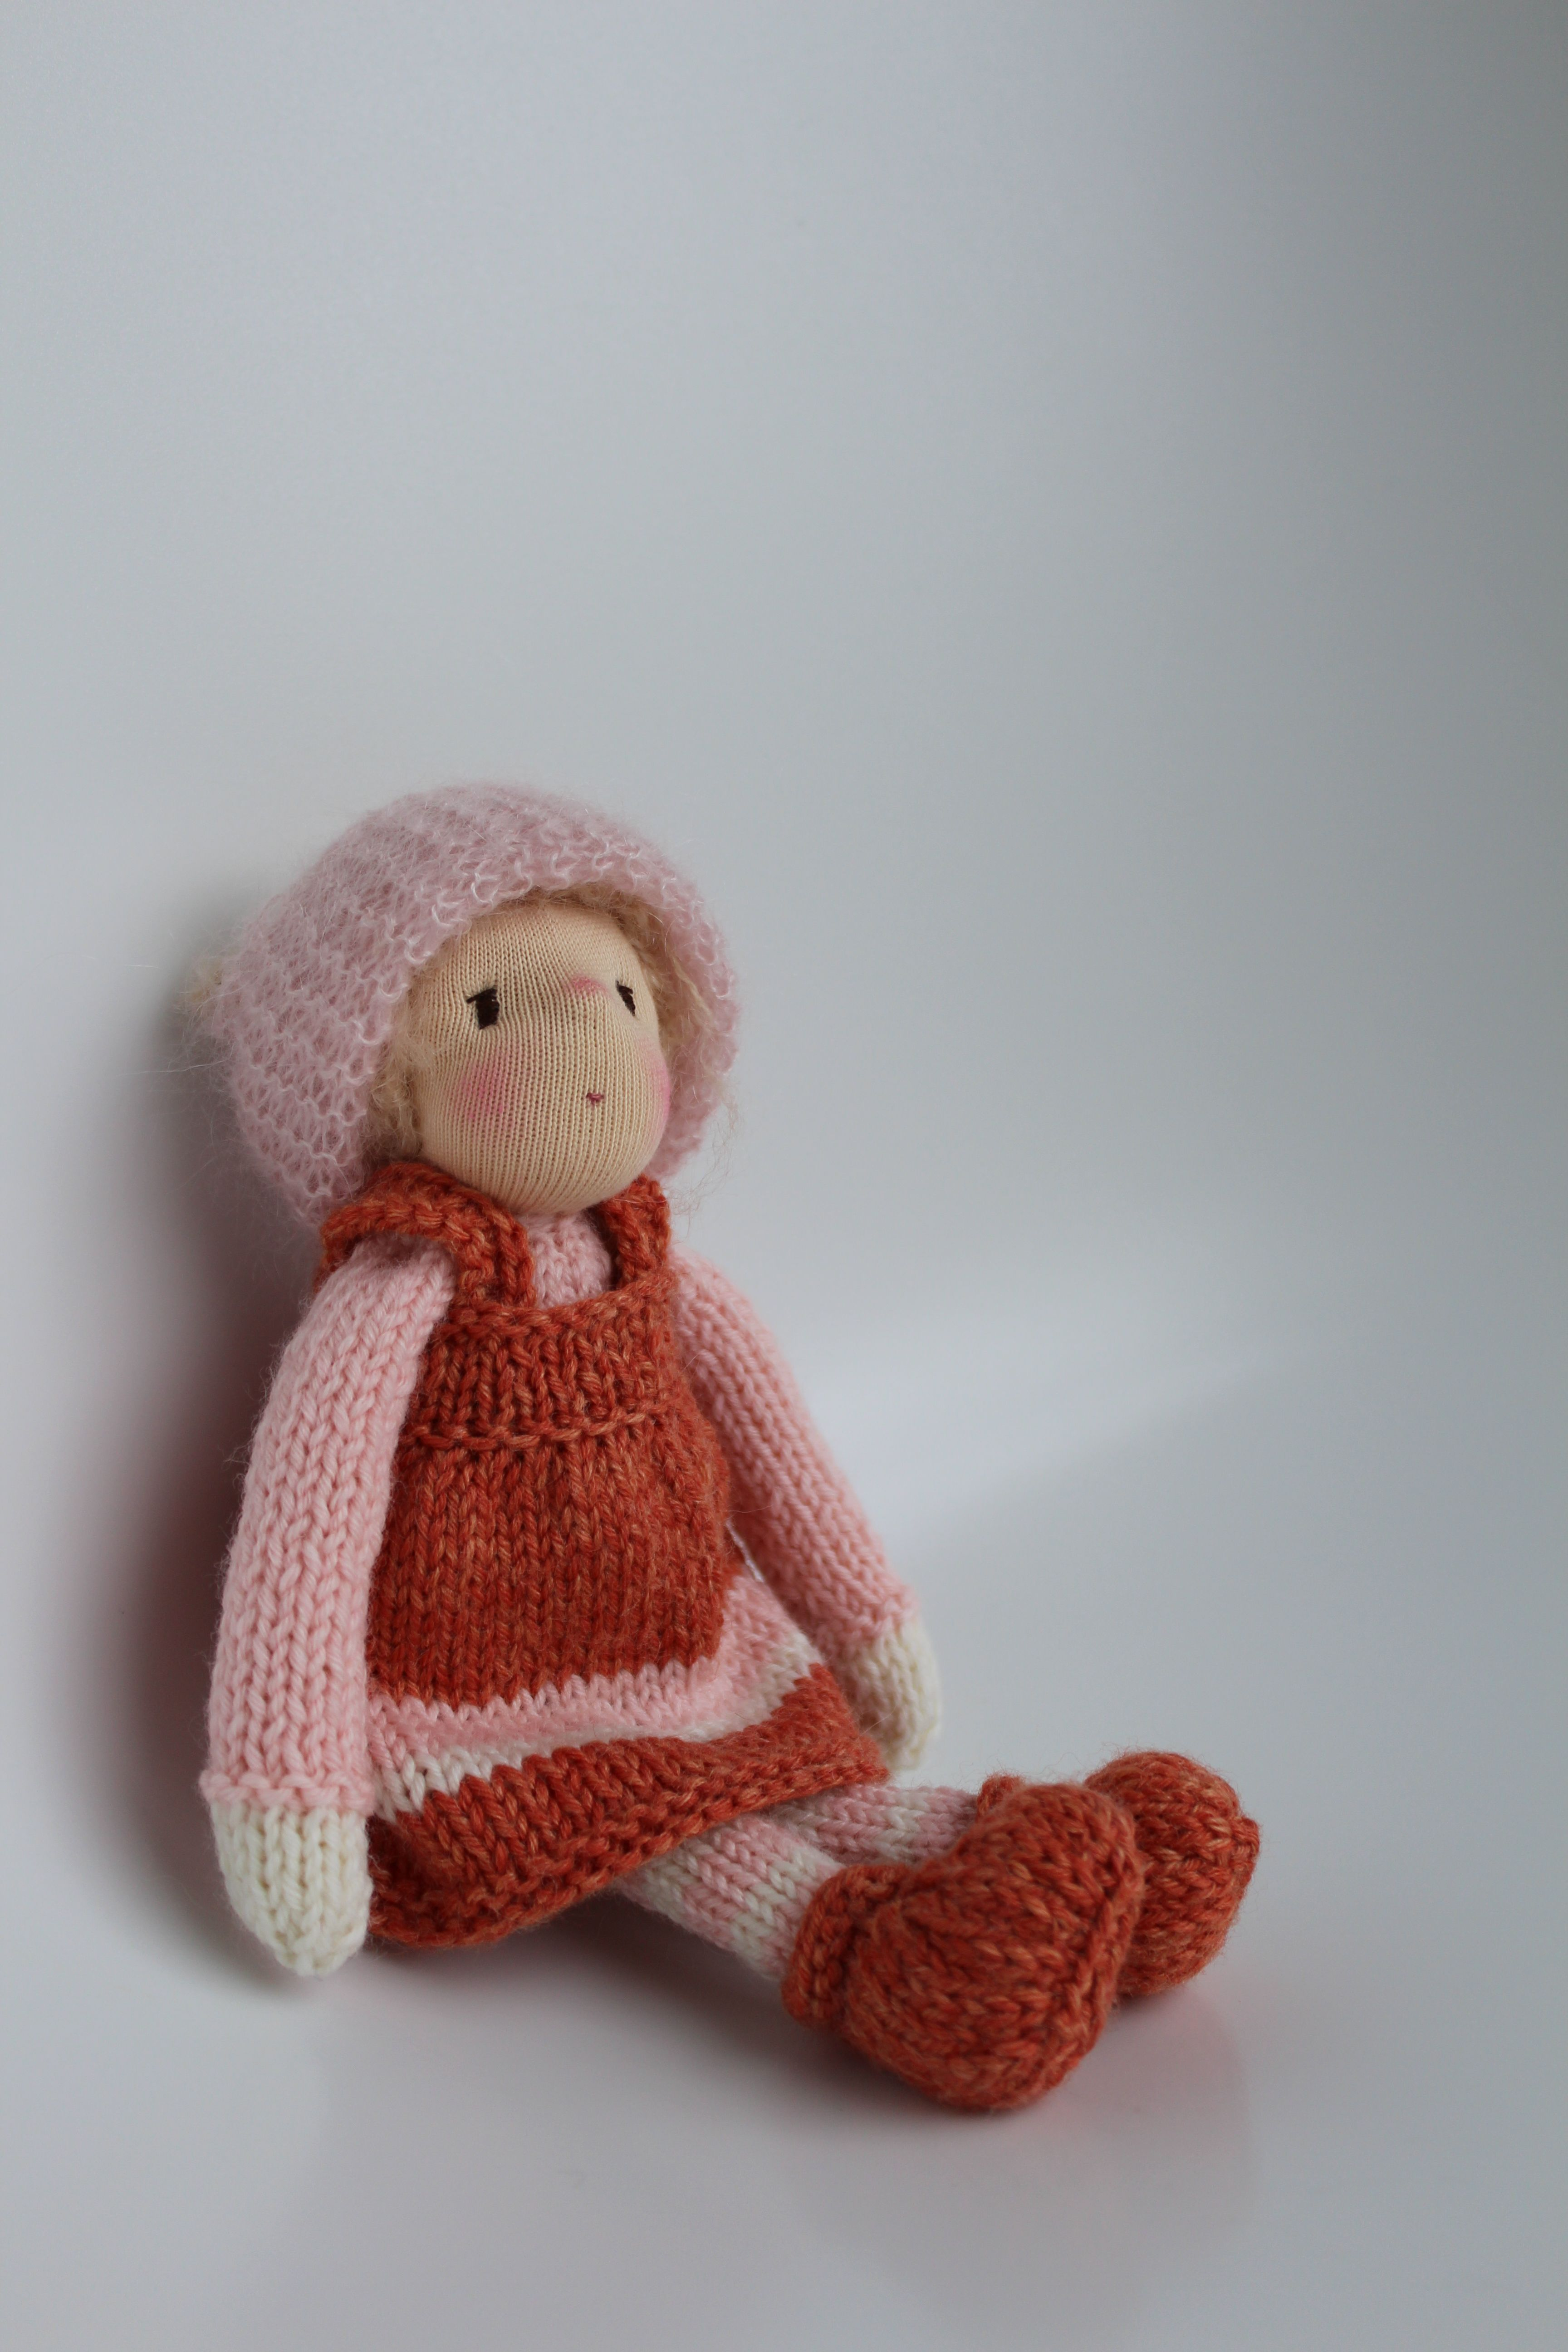 Maja. A little knitted doll (20 cm) in Waldorf style. Made of soft merinowool, silk and mohair yarns and Swiss cotton interlock.